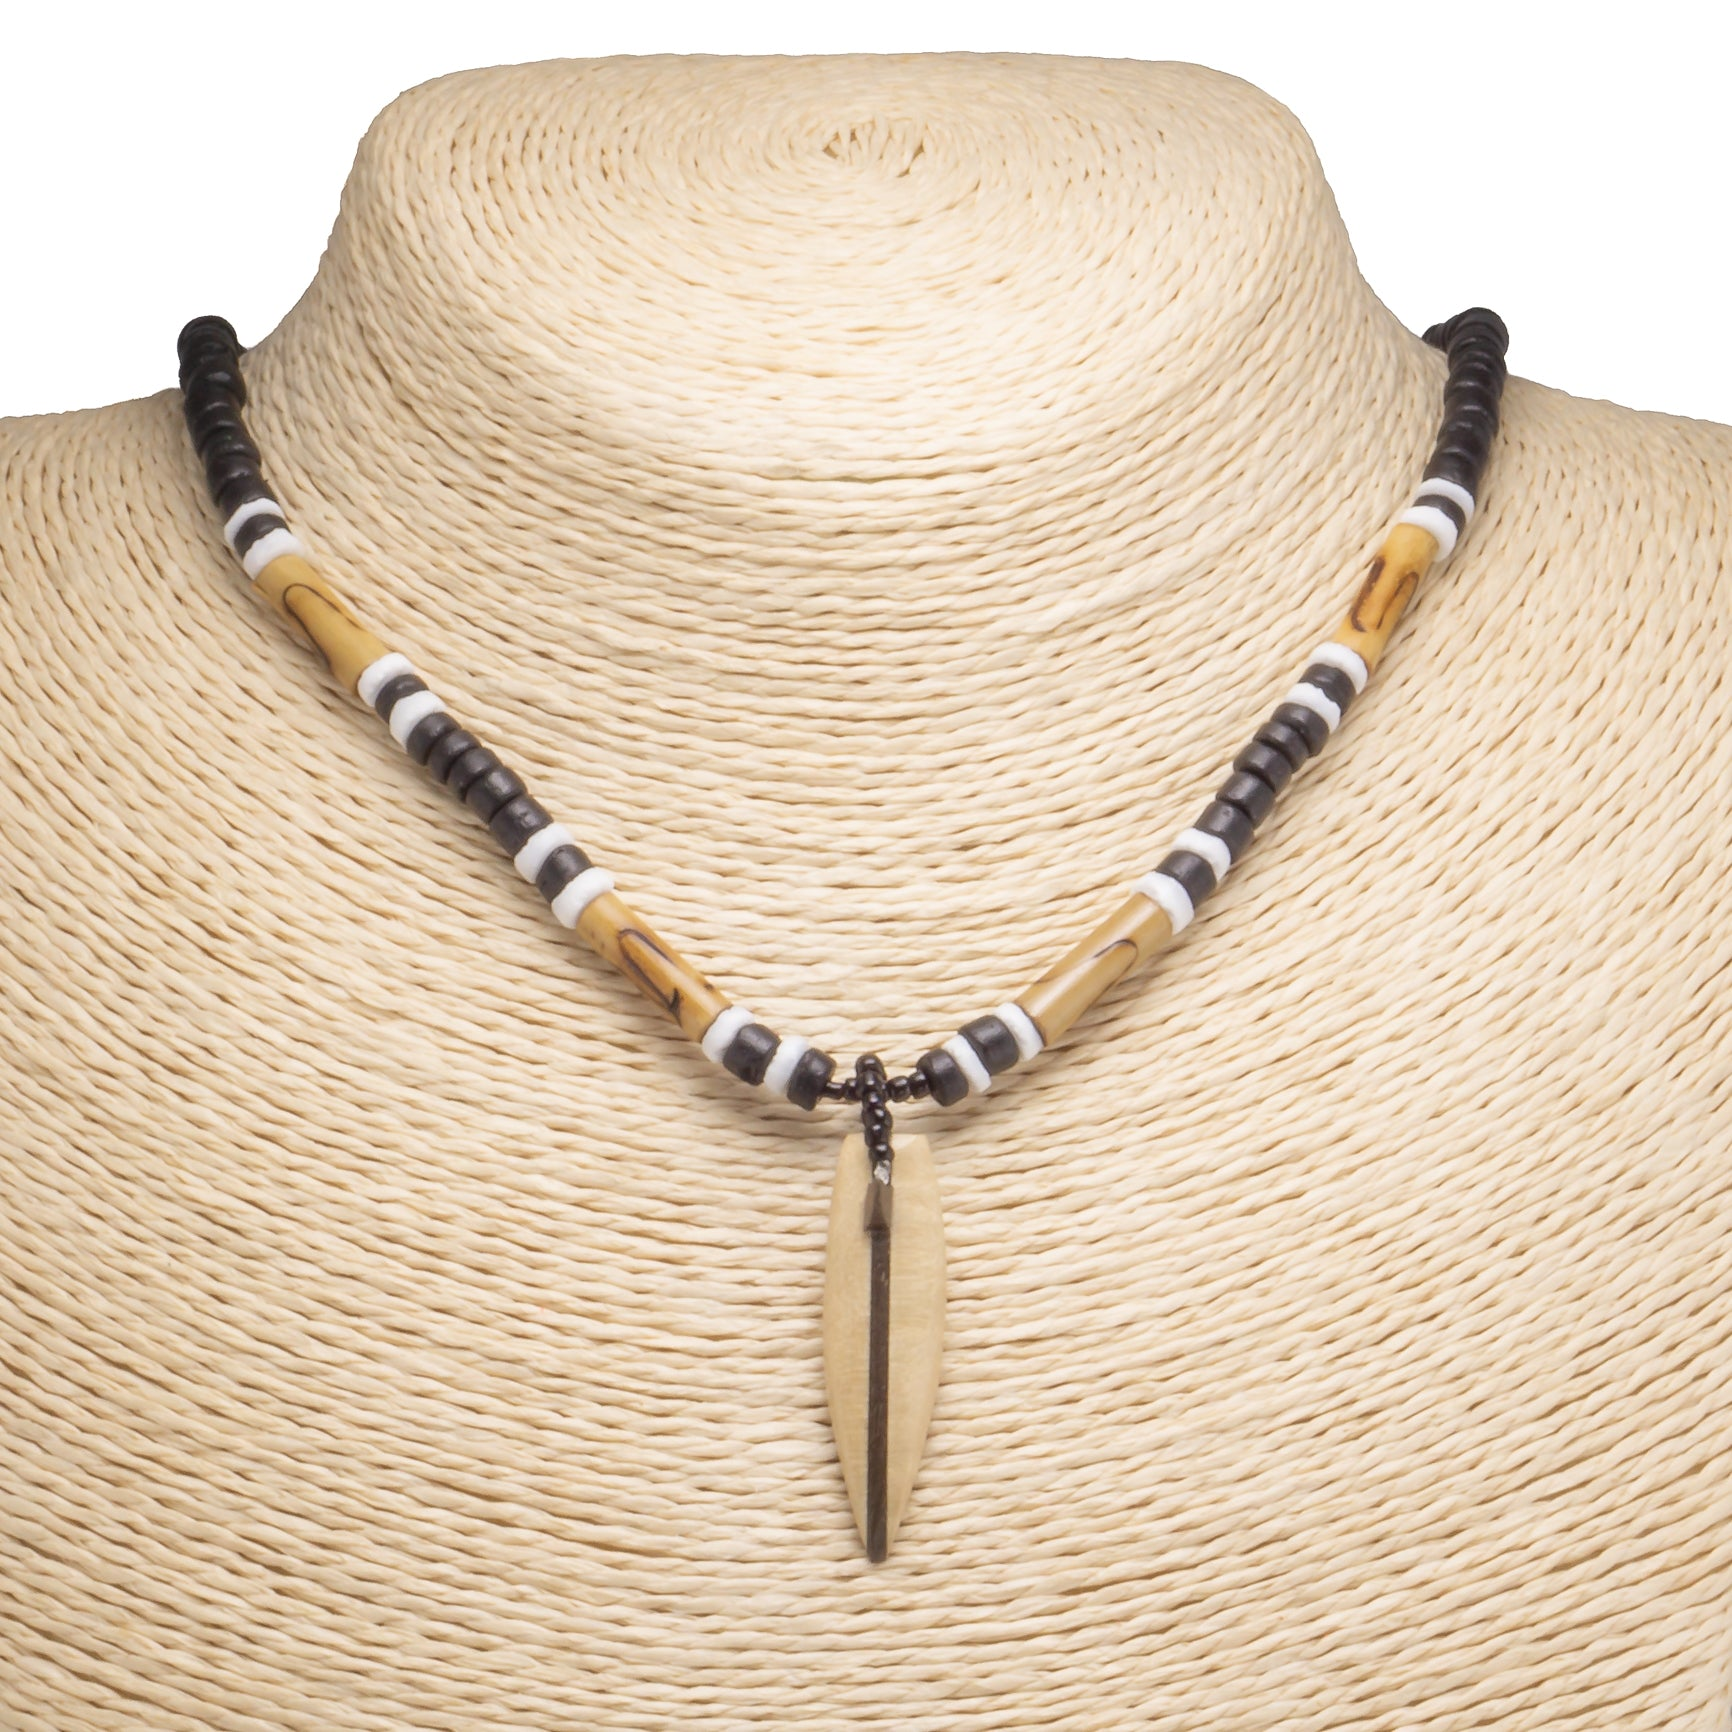 Wood Surfboard Pendant on Black Coconut Beads Necklace